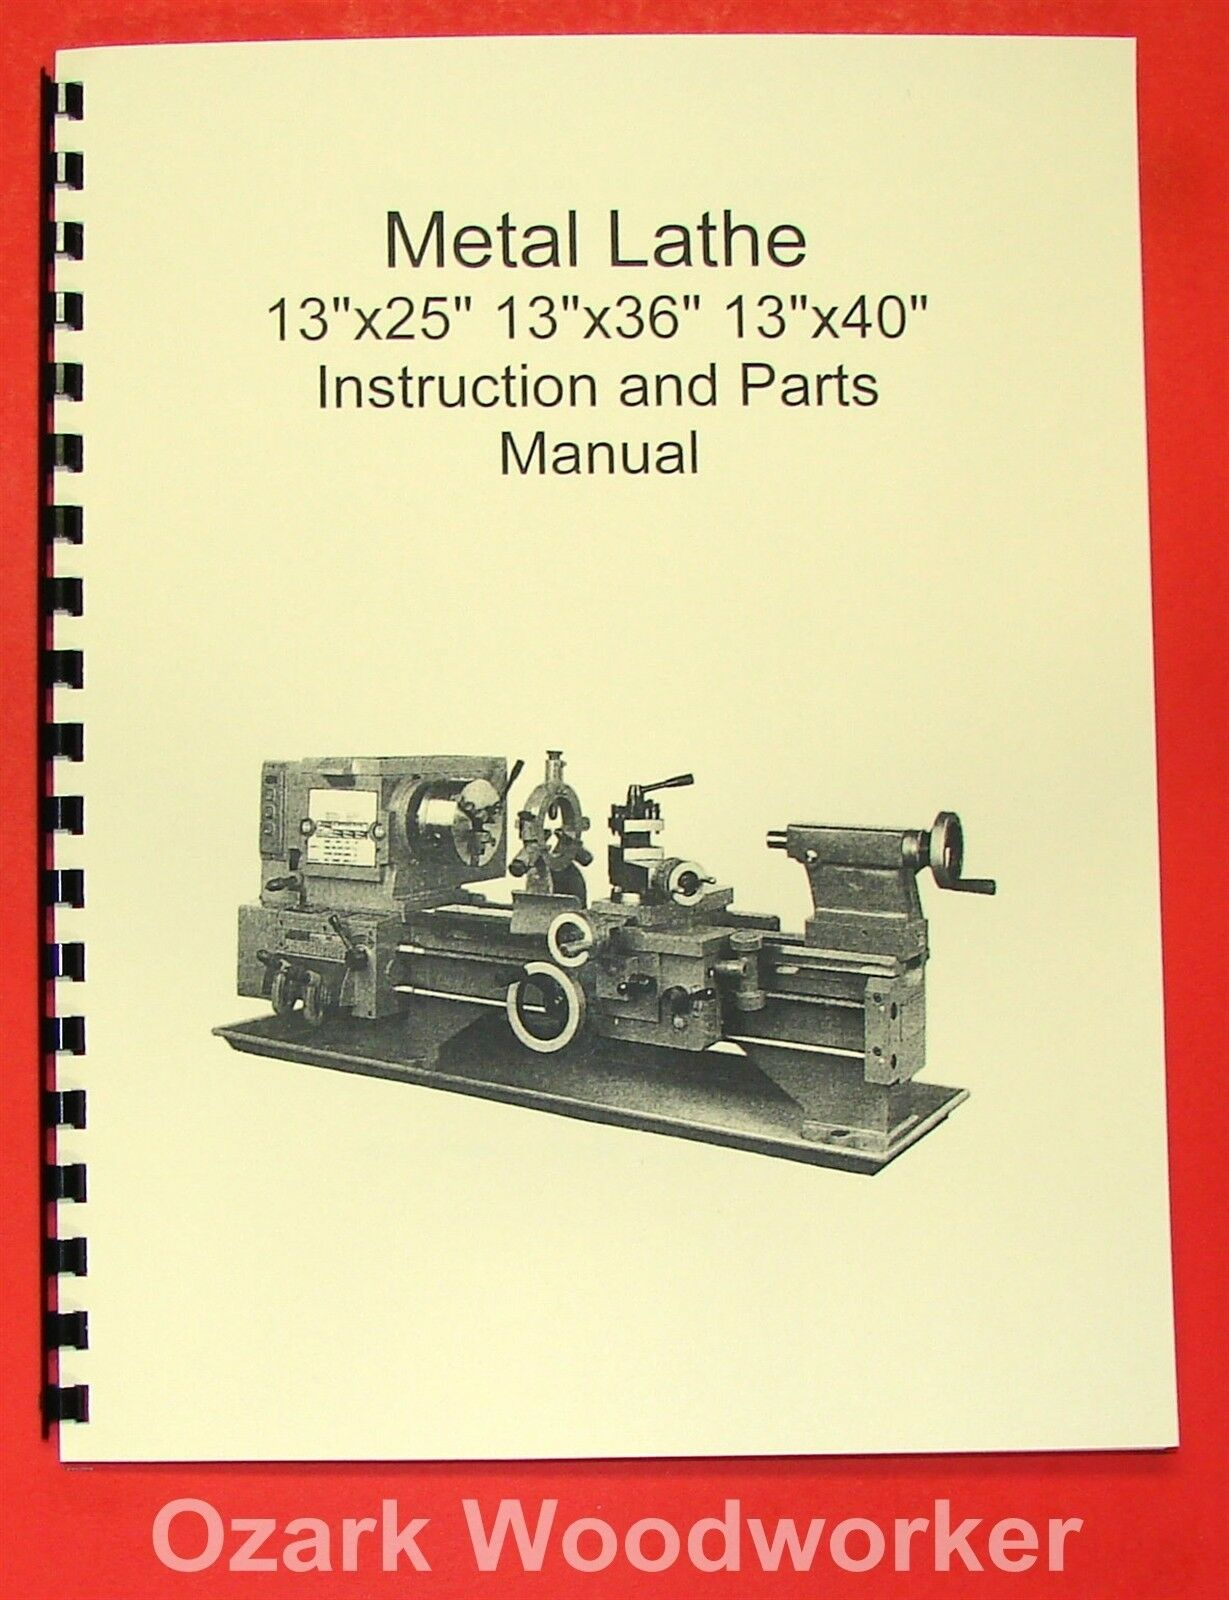 13x25 13x36 13x40 Metal Lathe Manual JET, Enco, Grizzly 0773 1 of 2FREE  Shipping See More